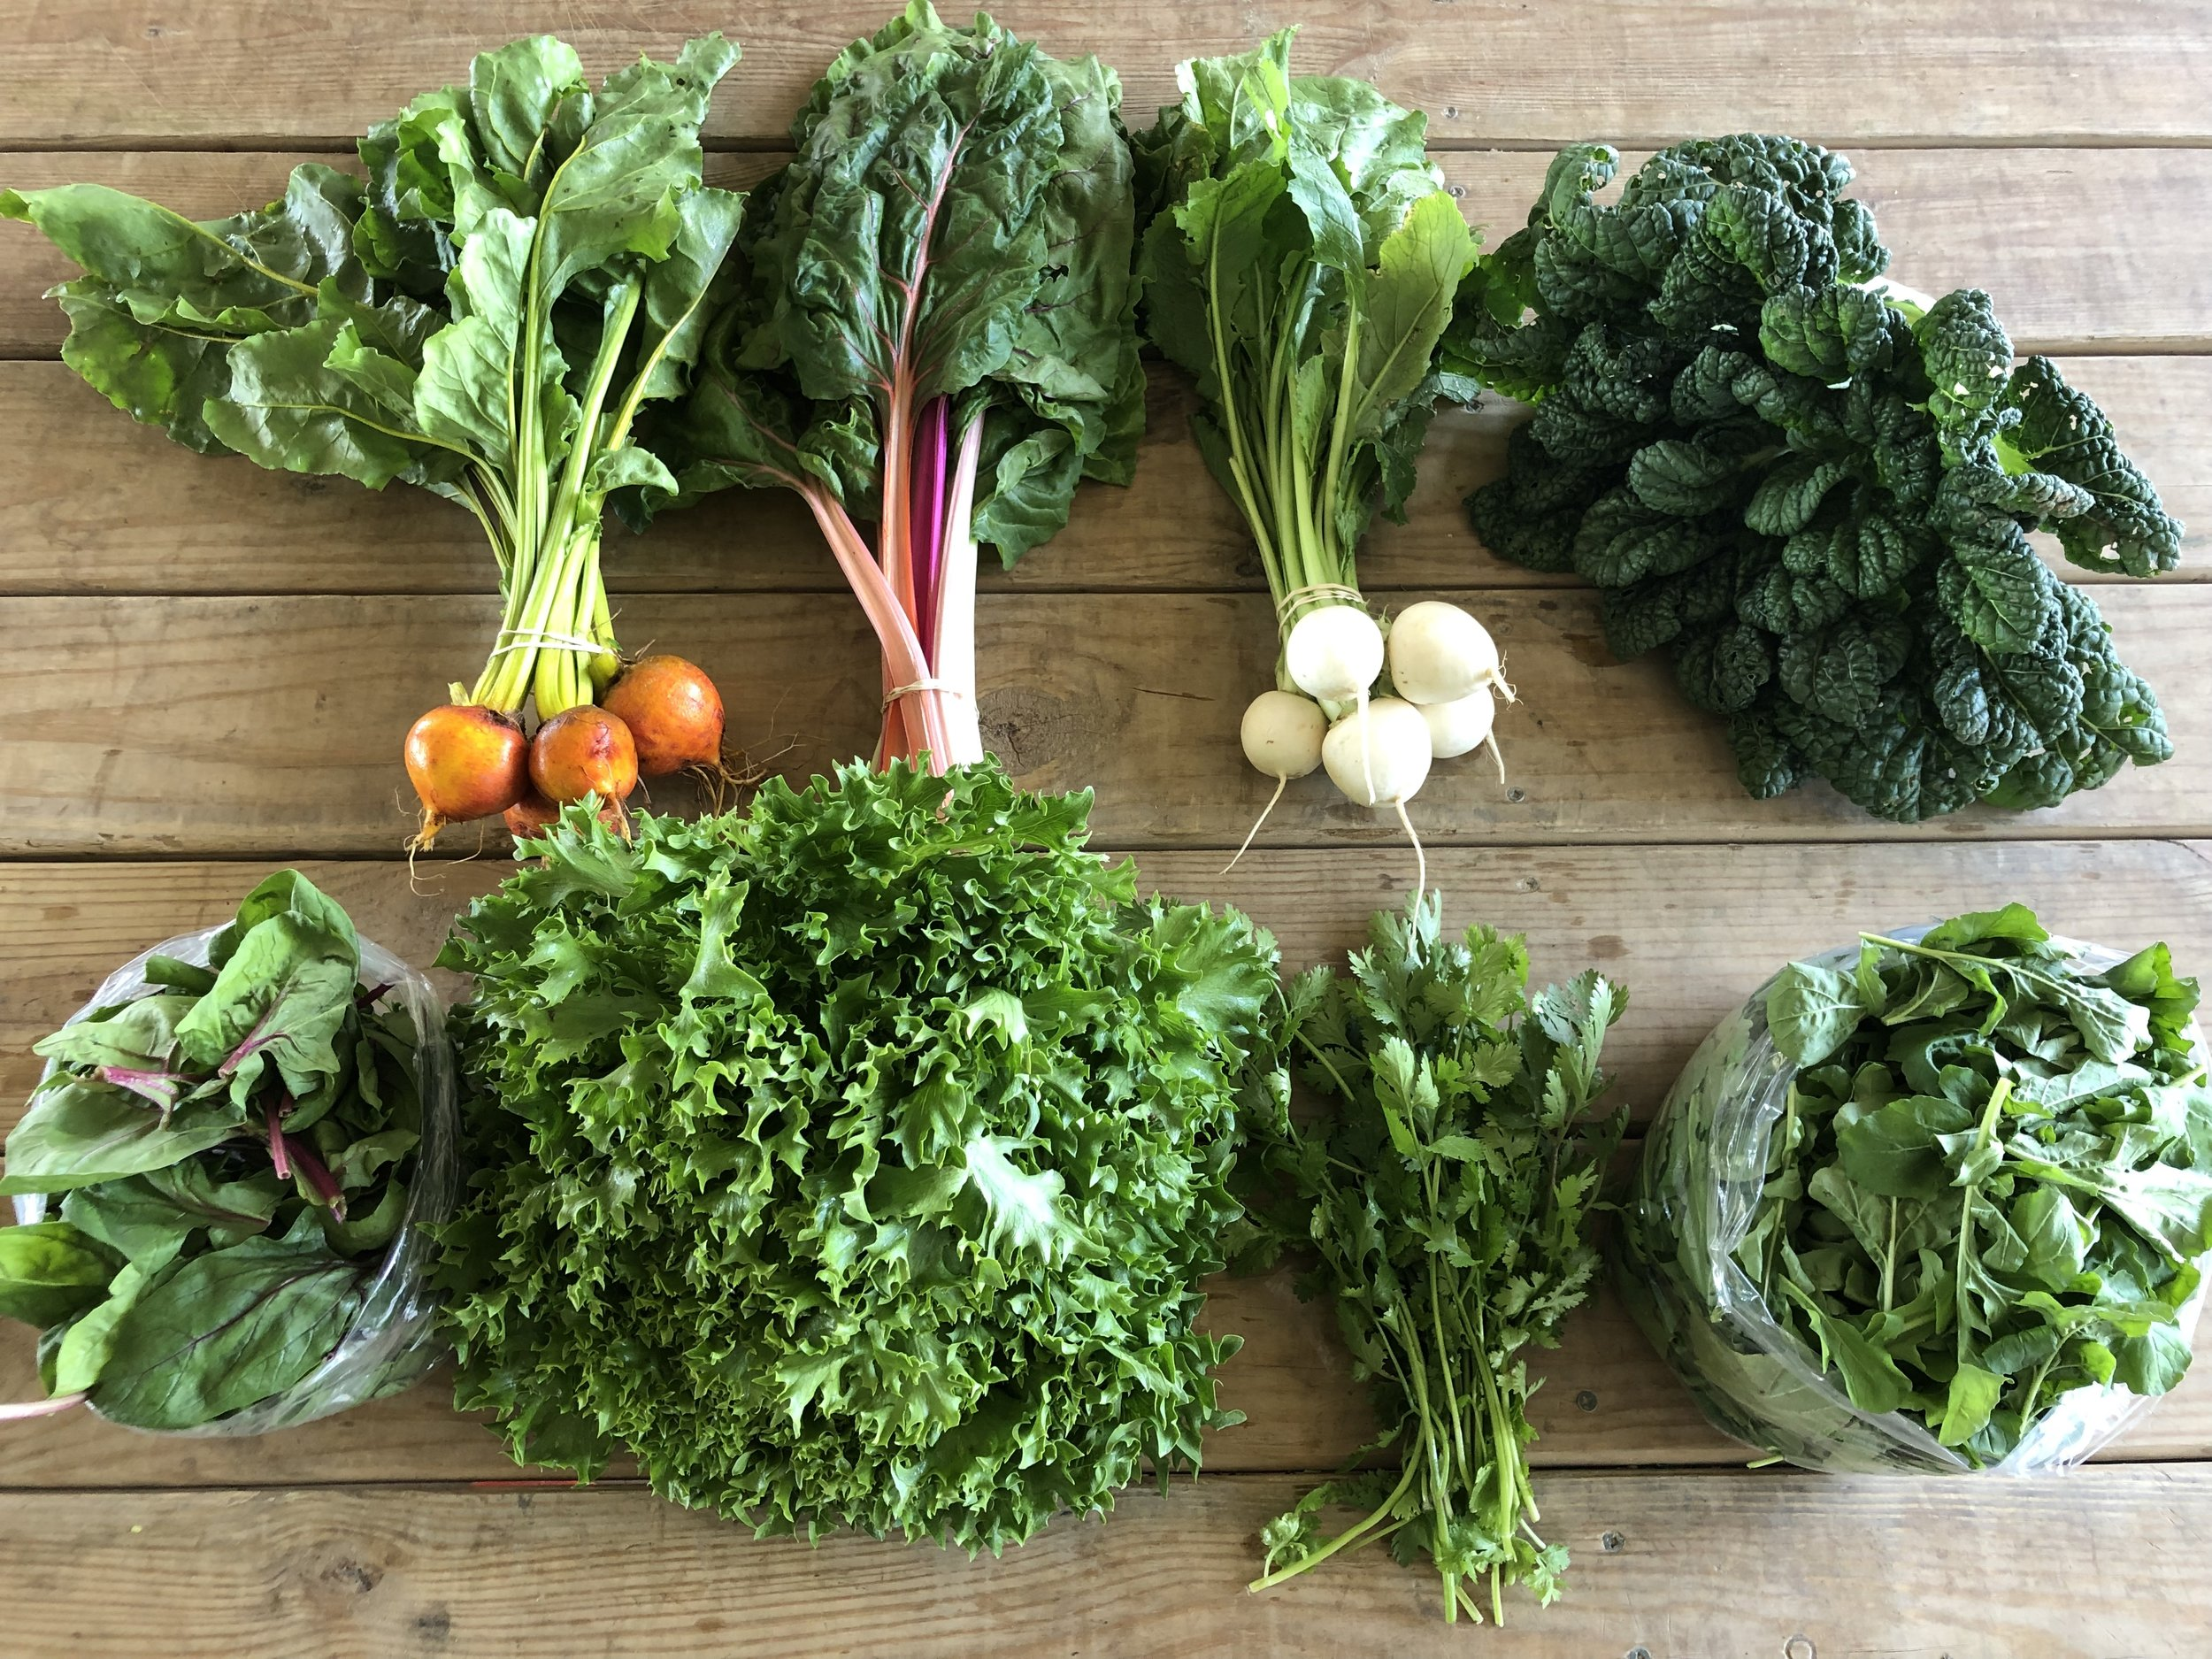 Top Row: Left: Golden Beets with greens, Swiss Chard, Hakurei Turnips, and Yukina Savoy.  Bottom Row: Left: Red Veined Spinach, Head of Lettuce, Cilantro, and Arugula.